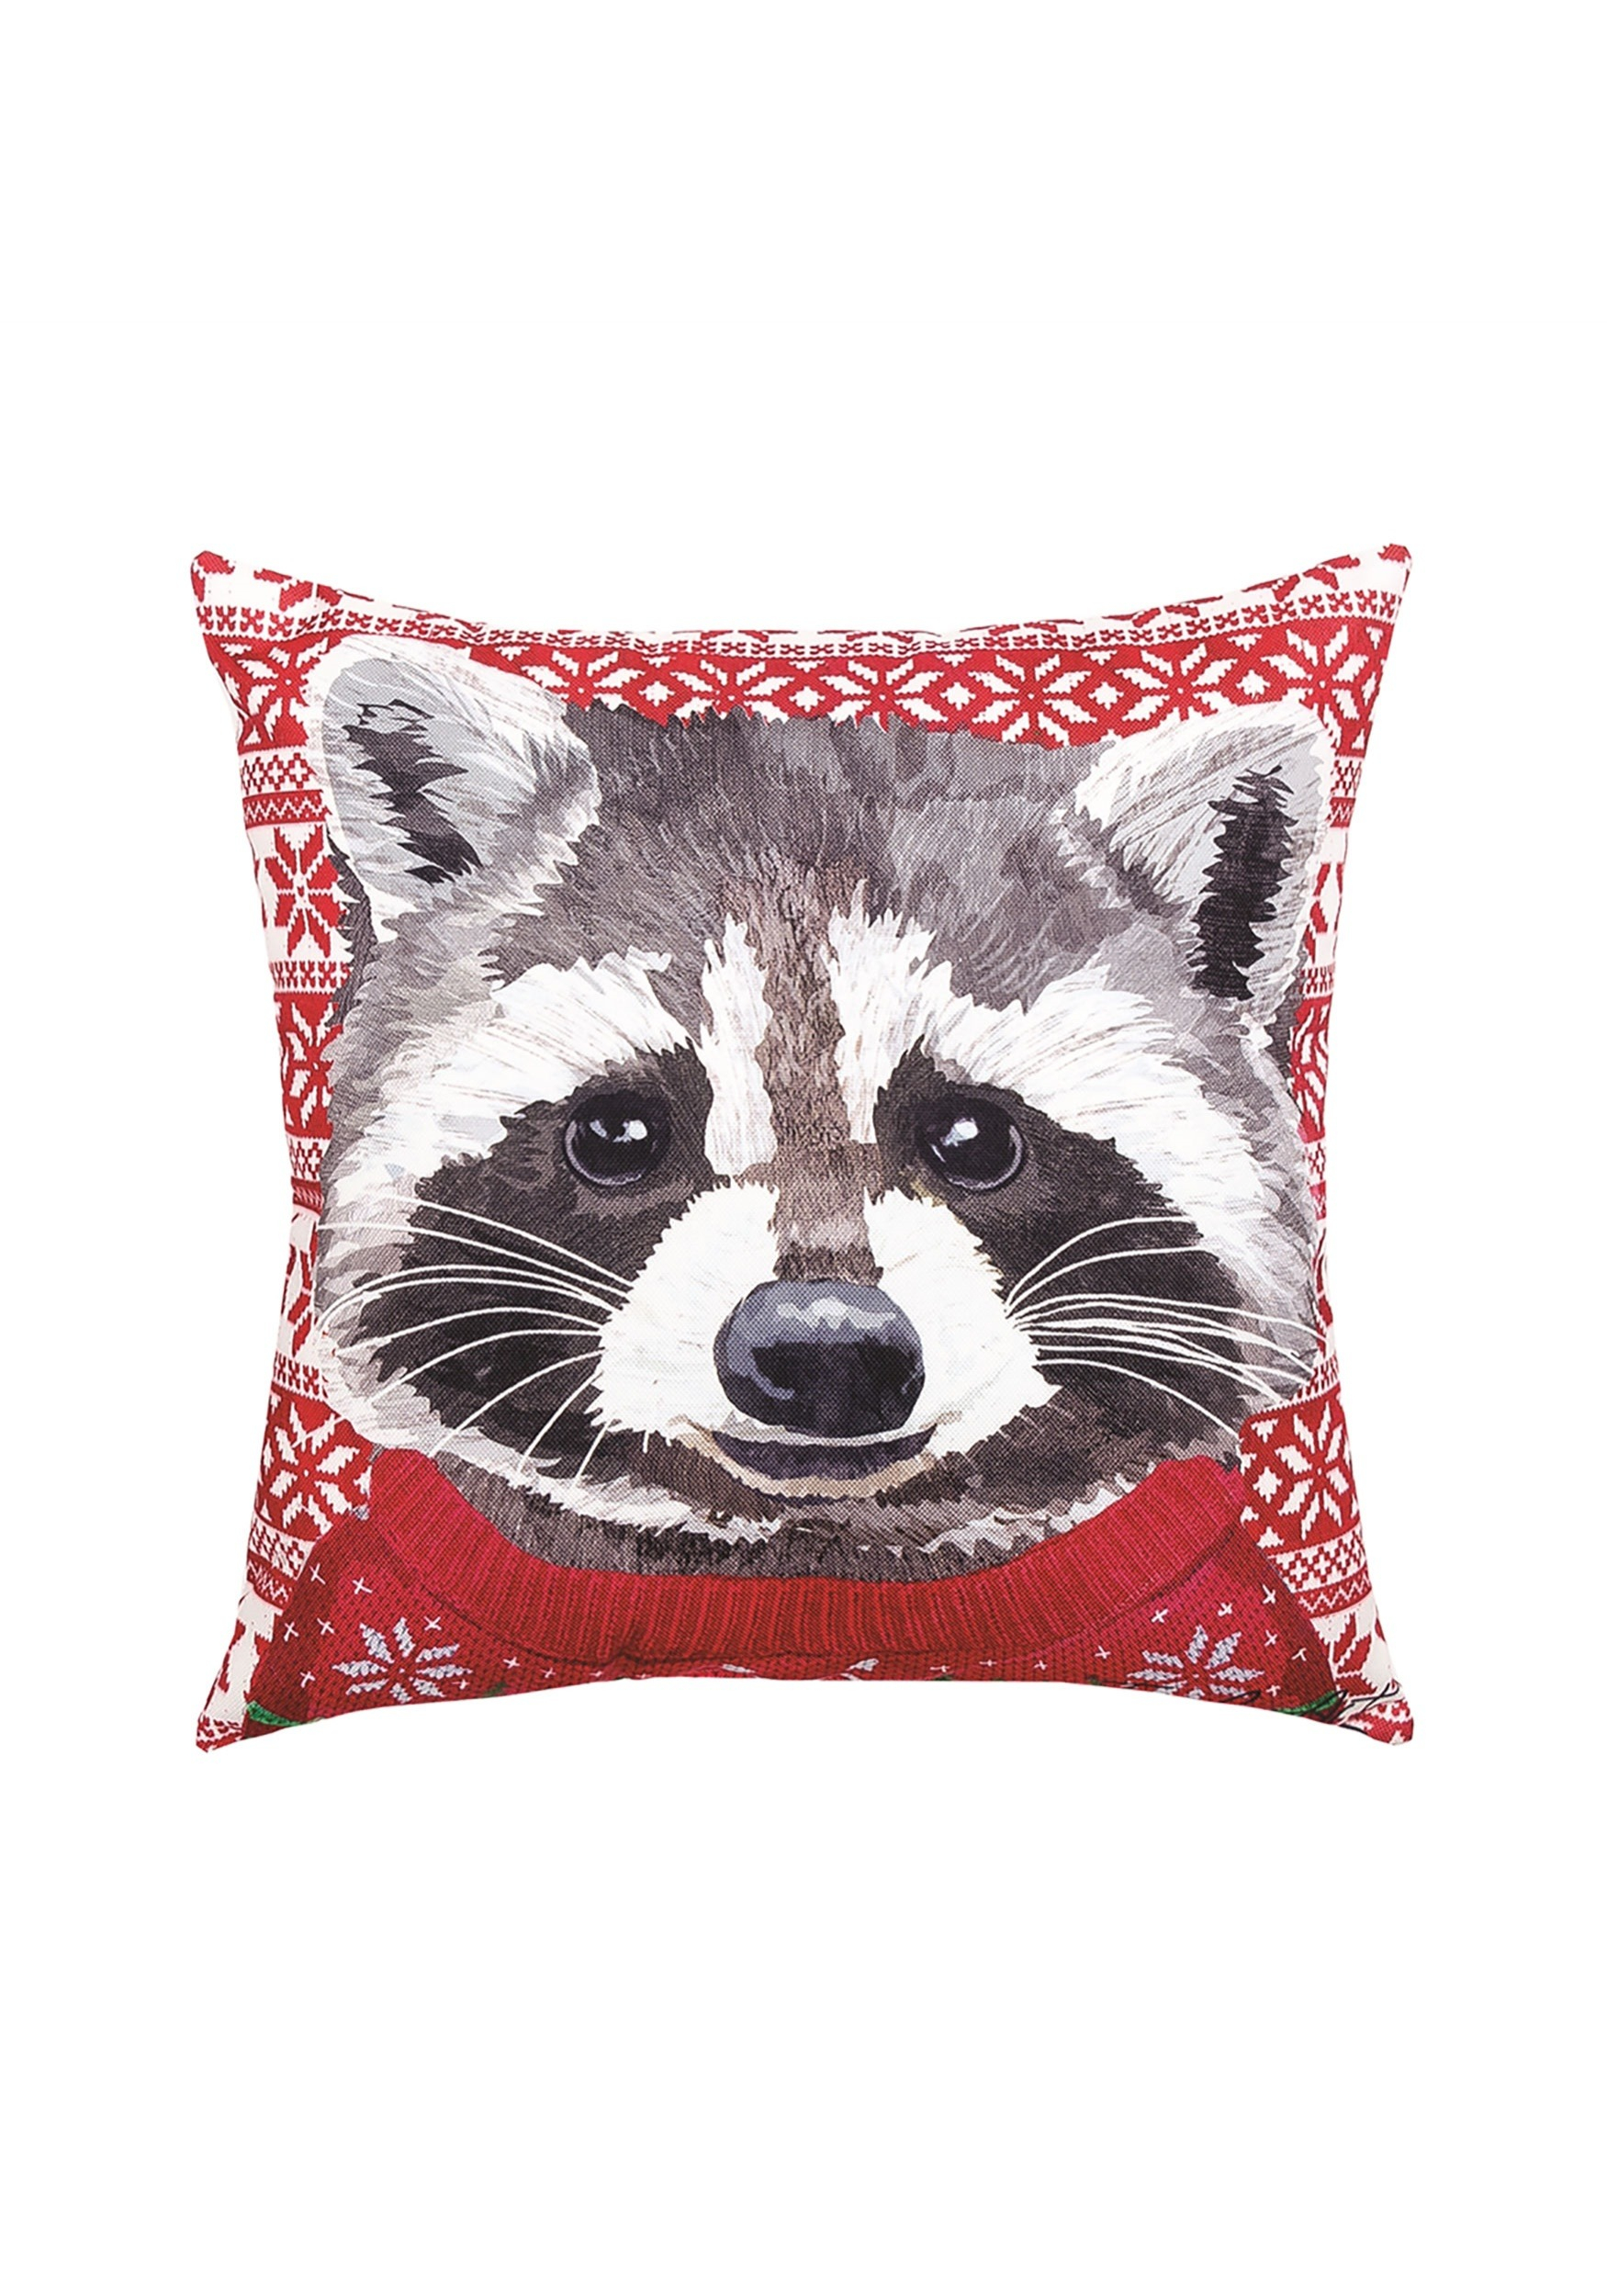 Raccoon Christmas Sweater Holiday Pillow